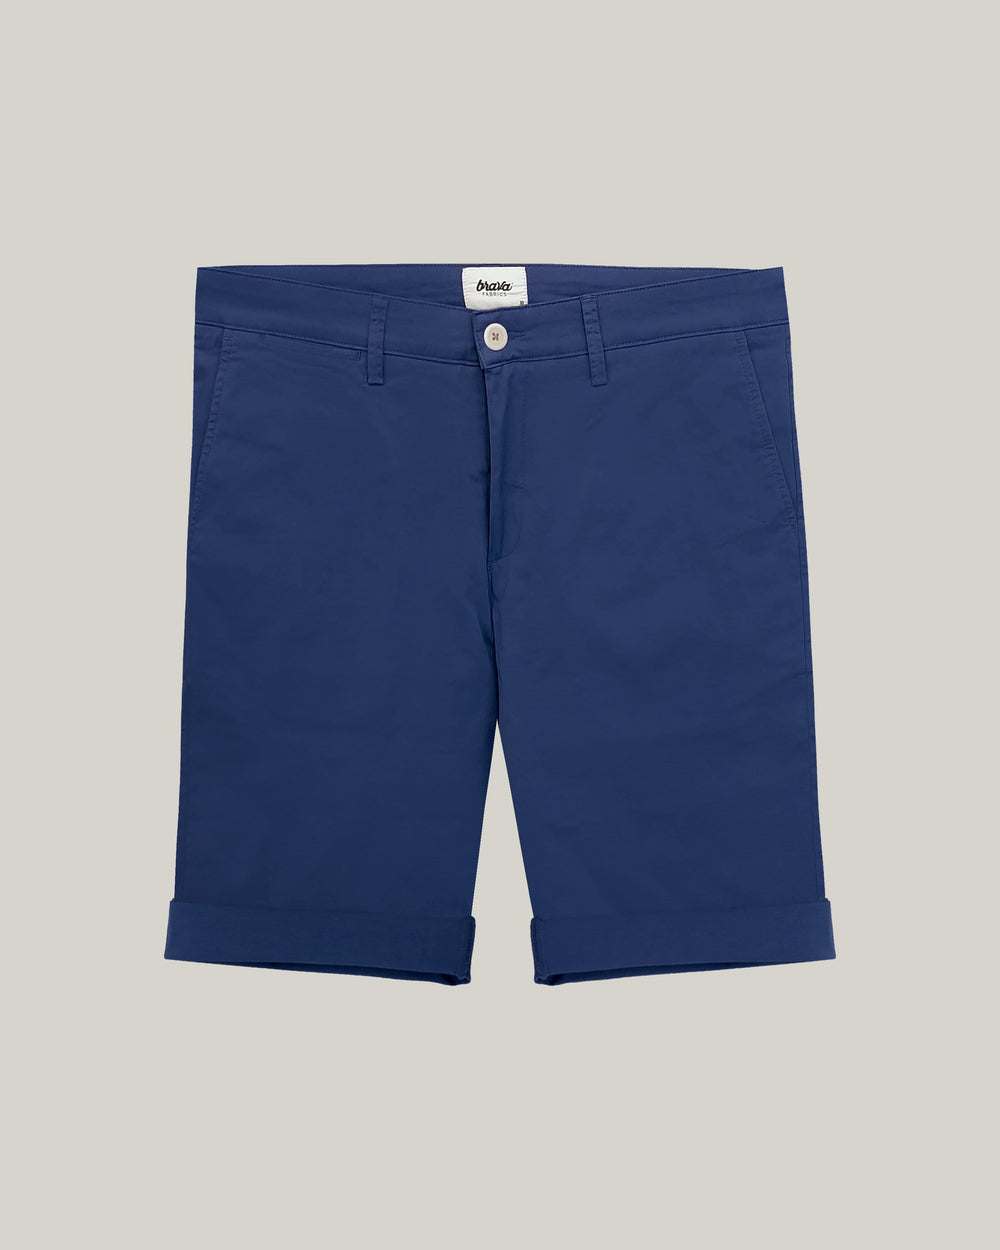 Brava Fabrics Shorts Japanese Sky Essential Shorts